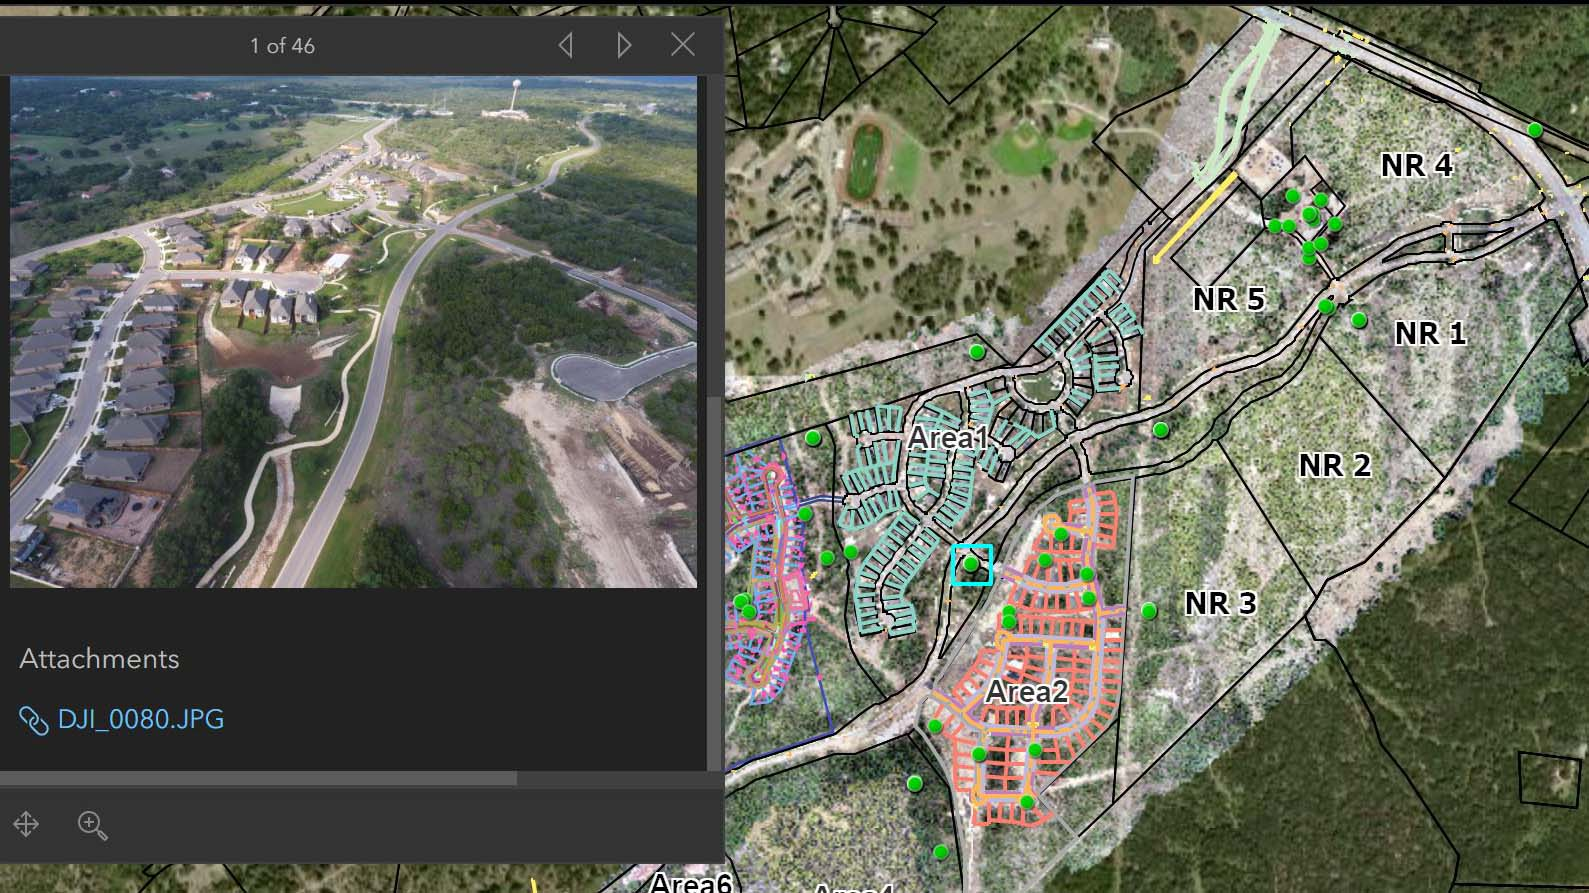 Shown here is a selected point with the UAV imagery captured by the drone at that position.